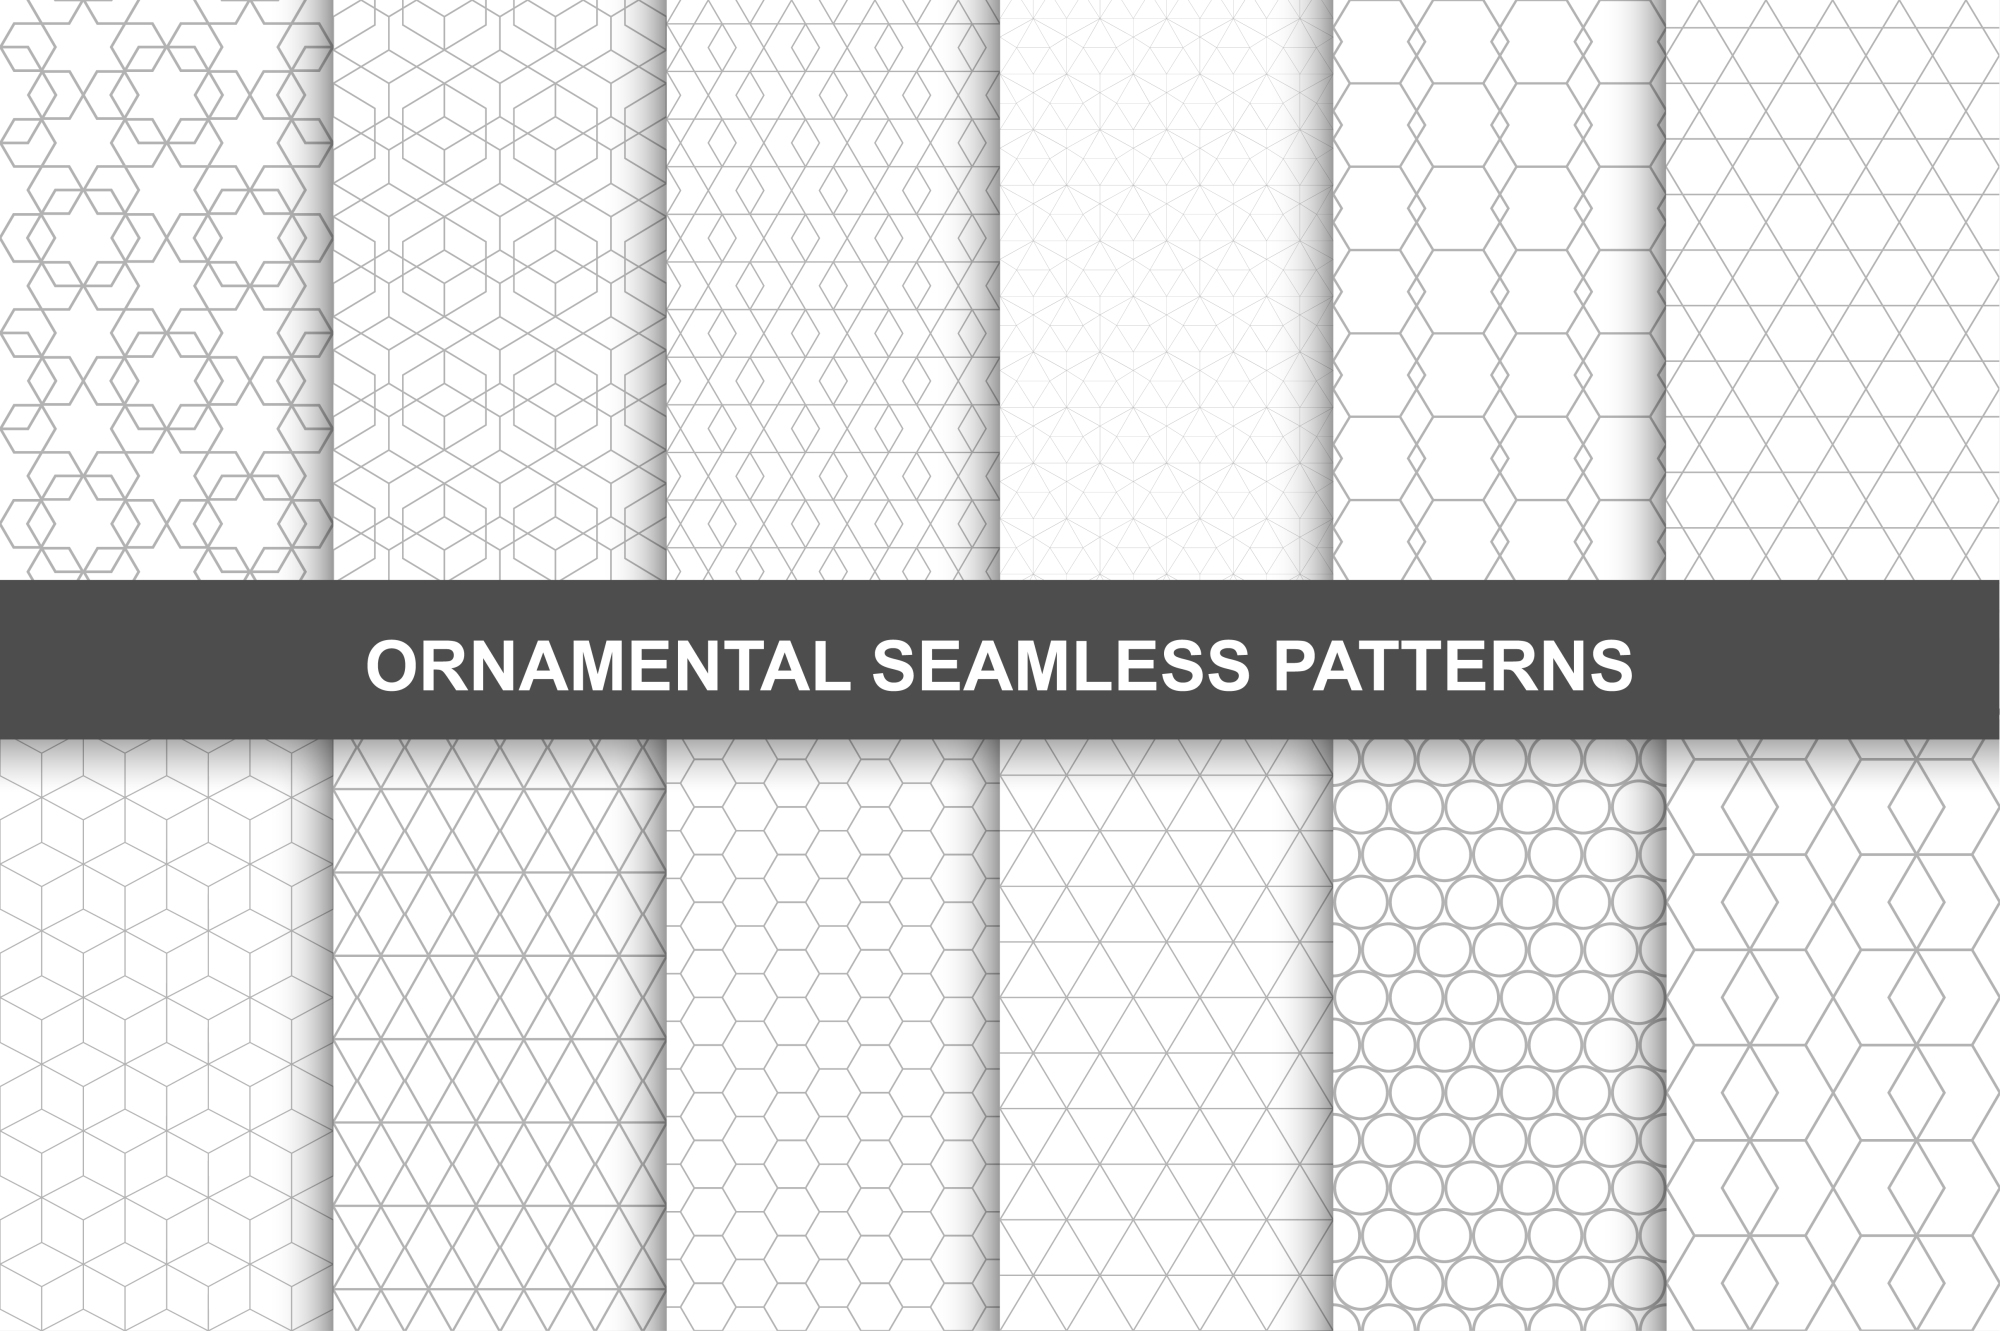 Ornamental seamless patterns. example image 1